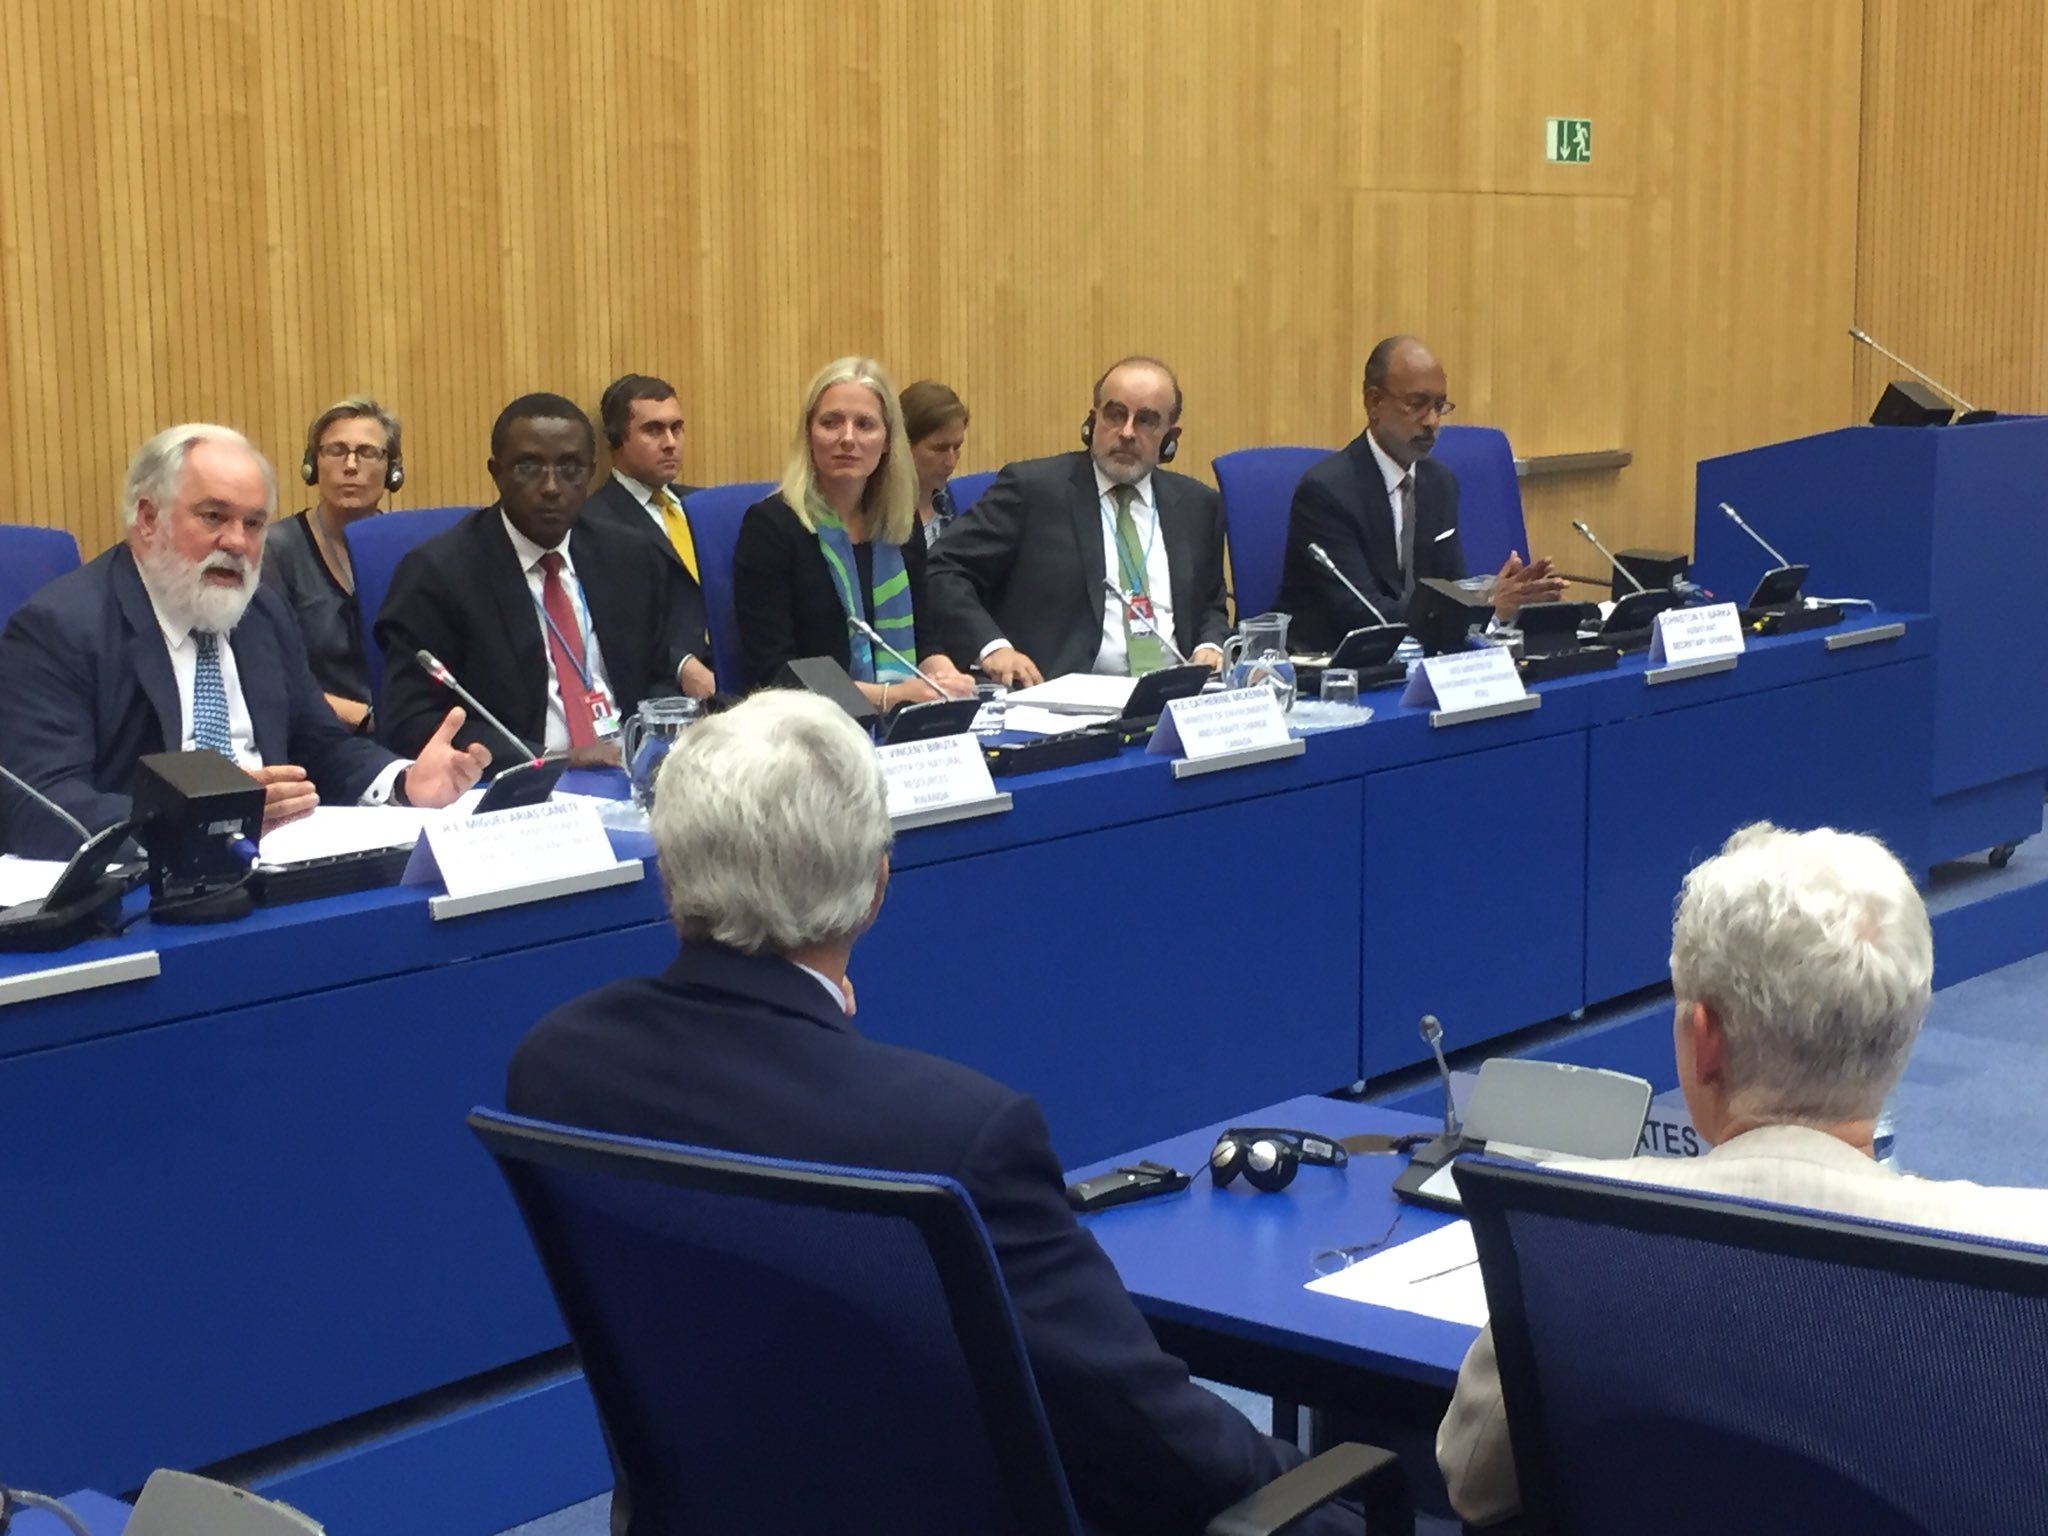 #HighAmbitionCoalition & other Ministers committed to ambitious #MontrealProtocol amendment on #HFCs meet in Vienna. https://t.co/v55HWxmVOF